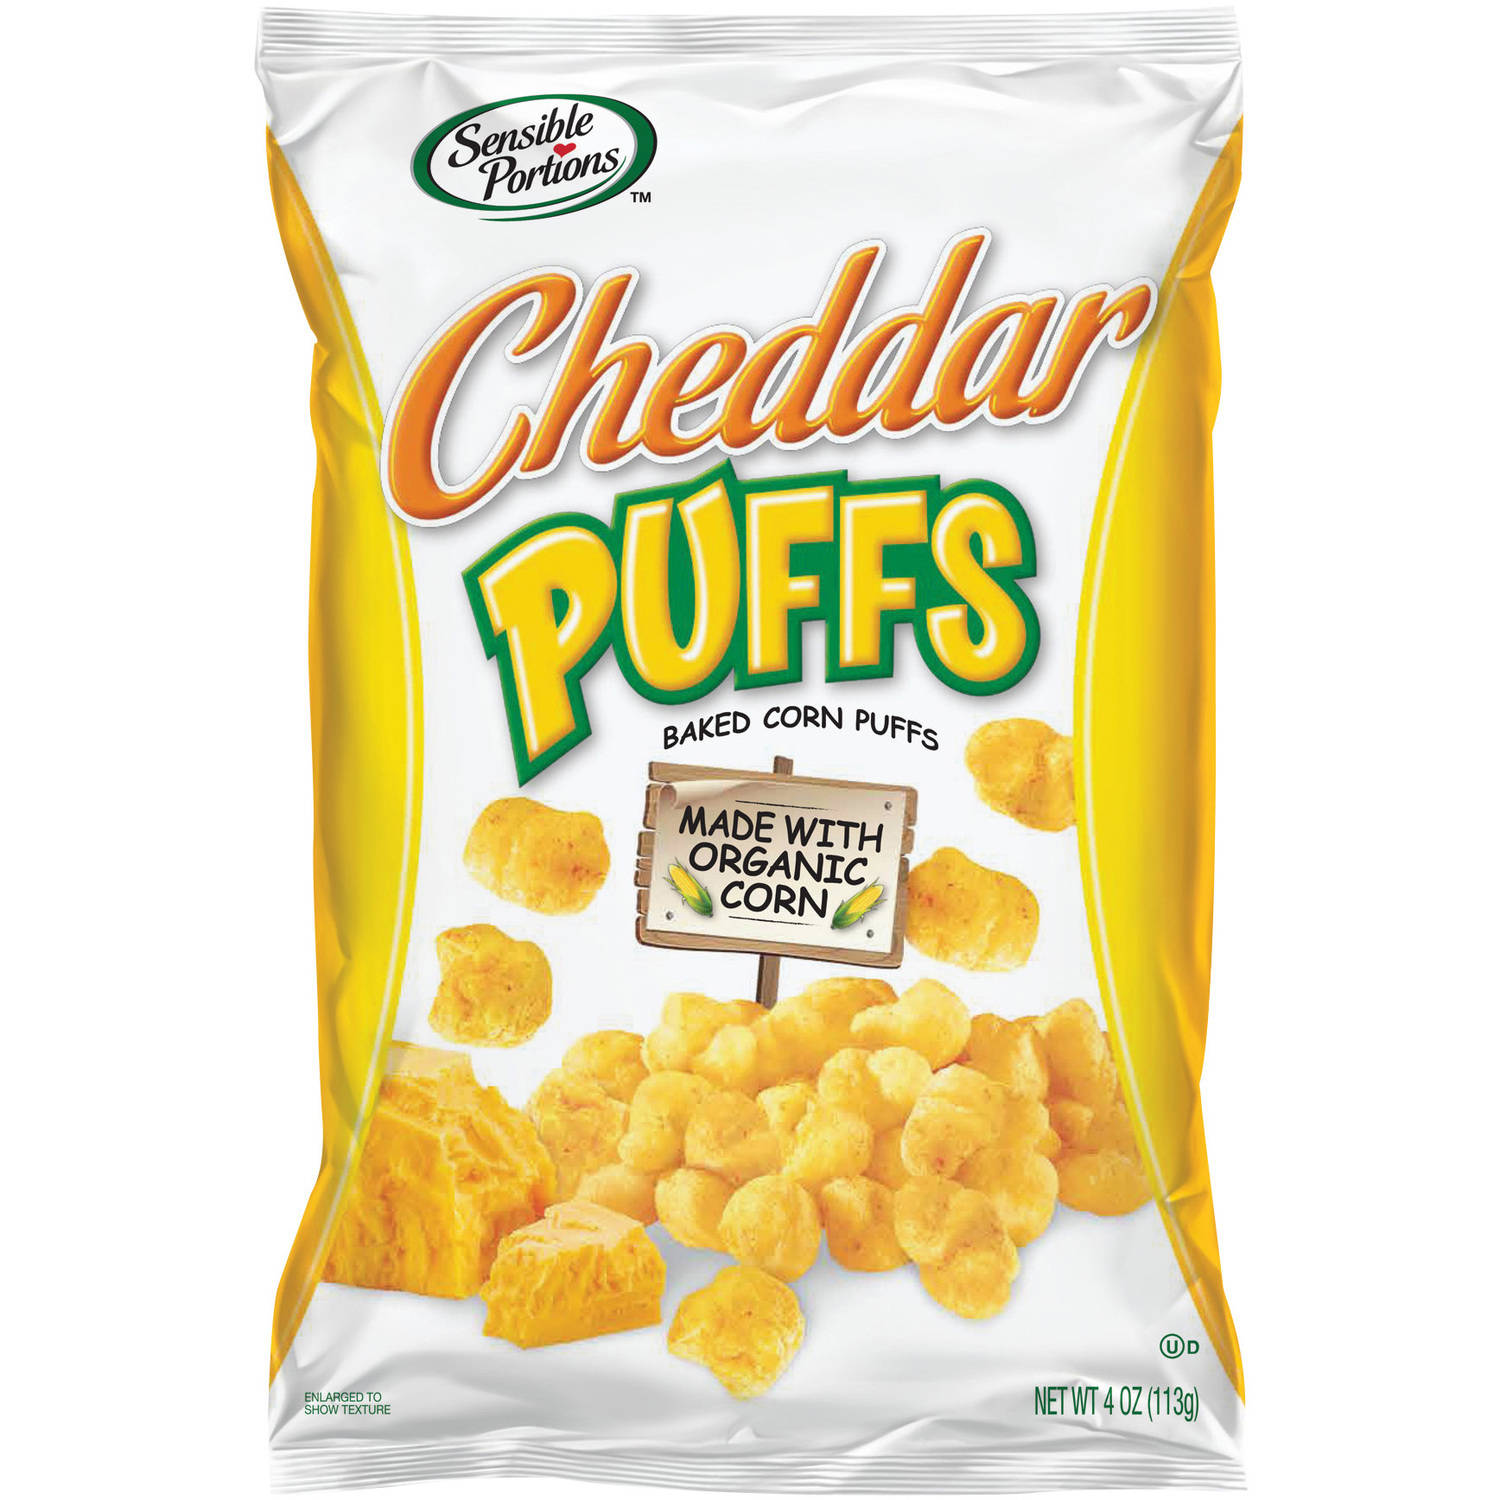 Sensible Portions Cheddar Puffs Baked Corn Puffs, 4 oz